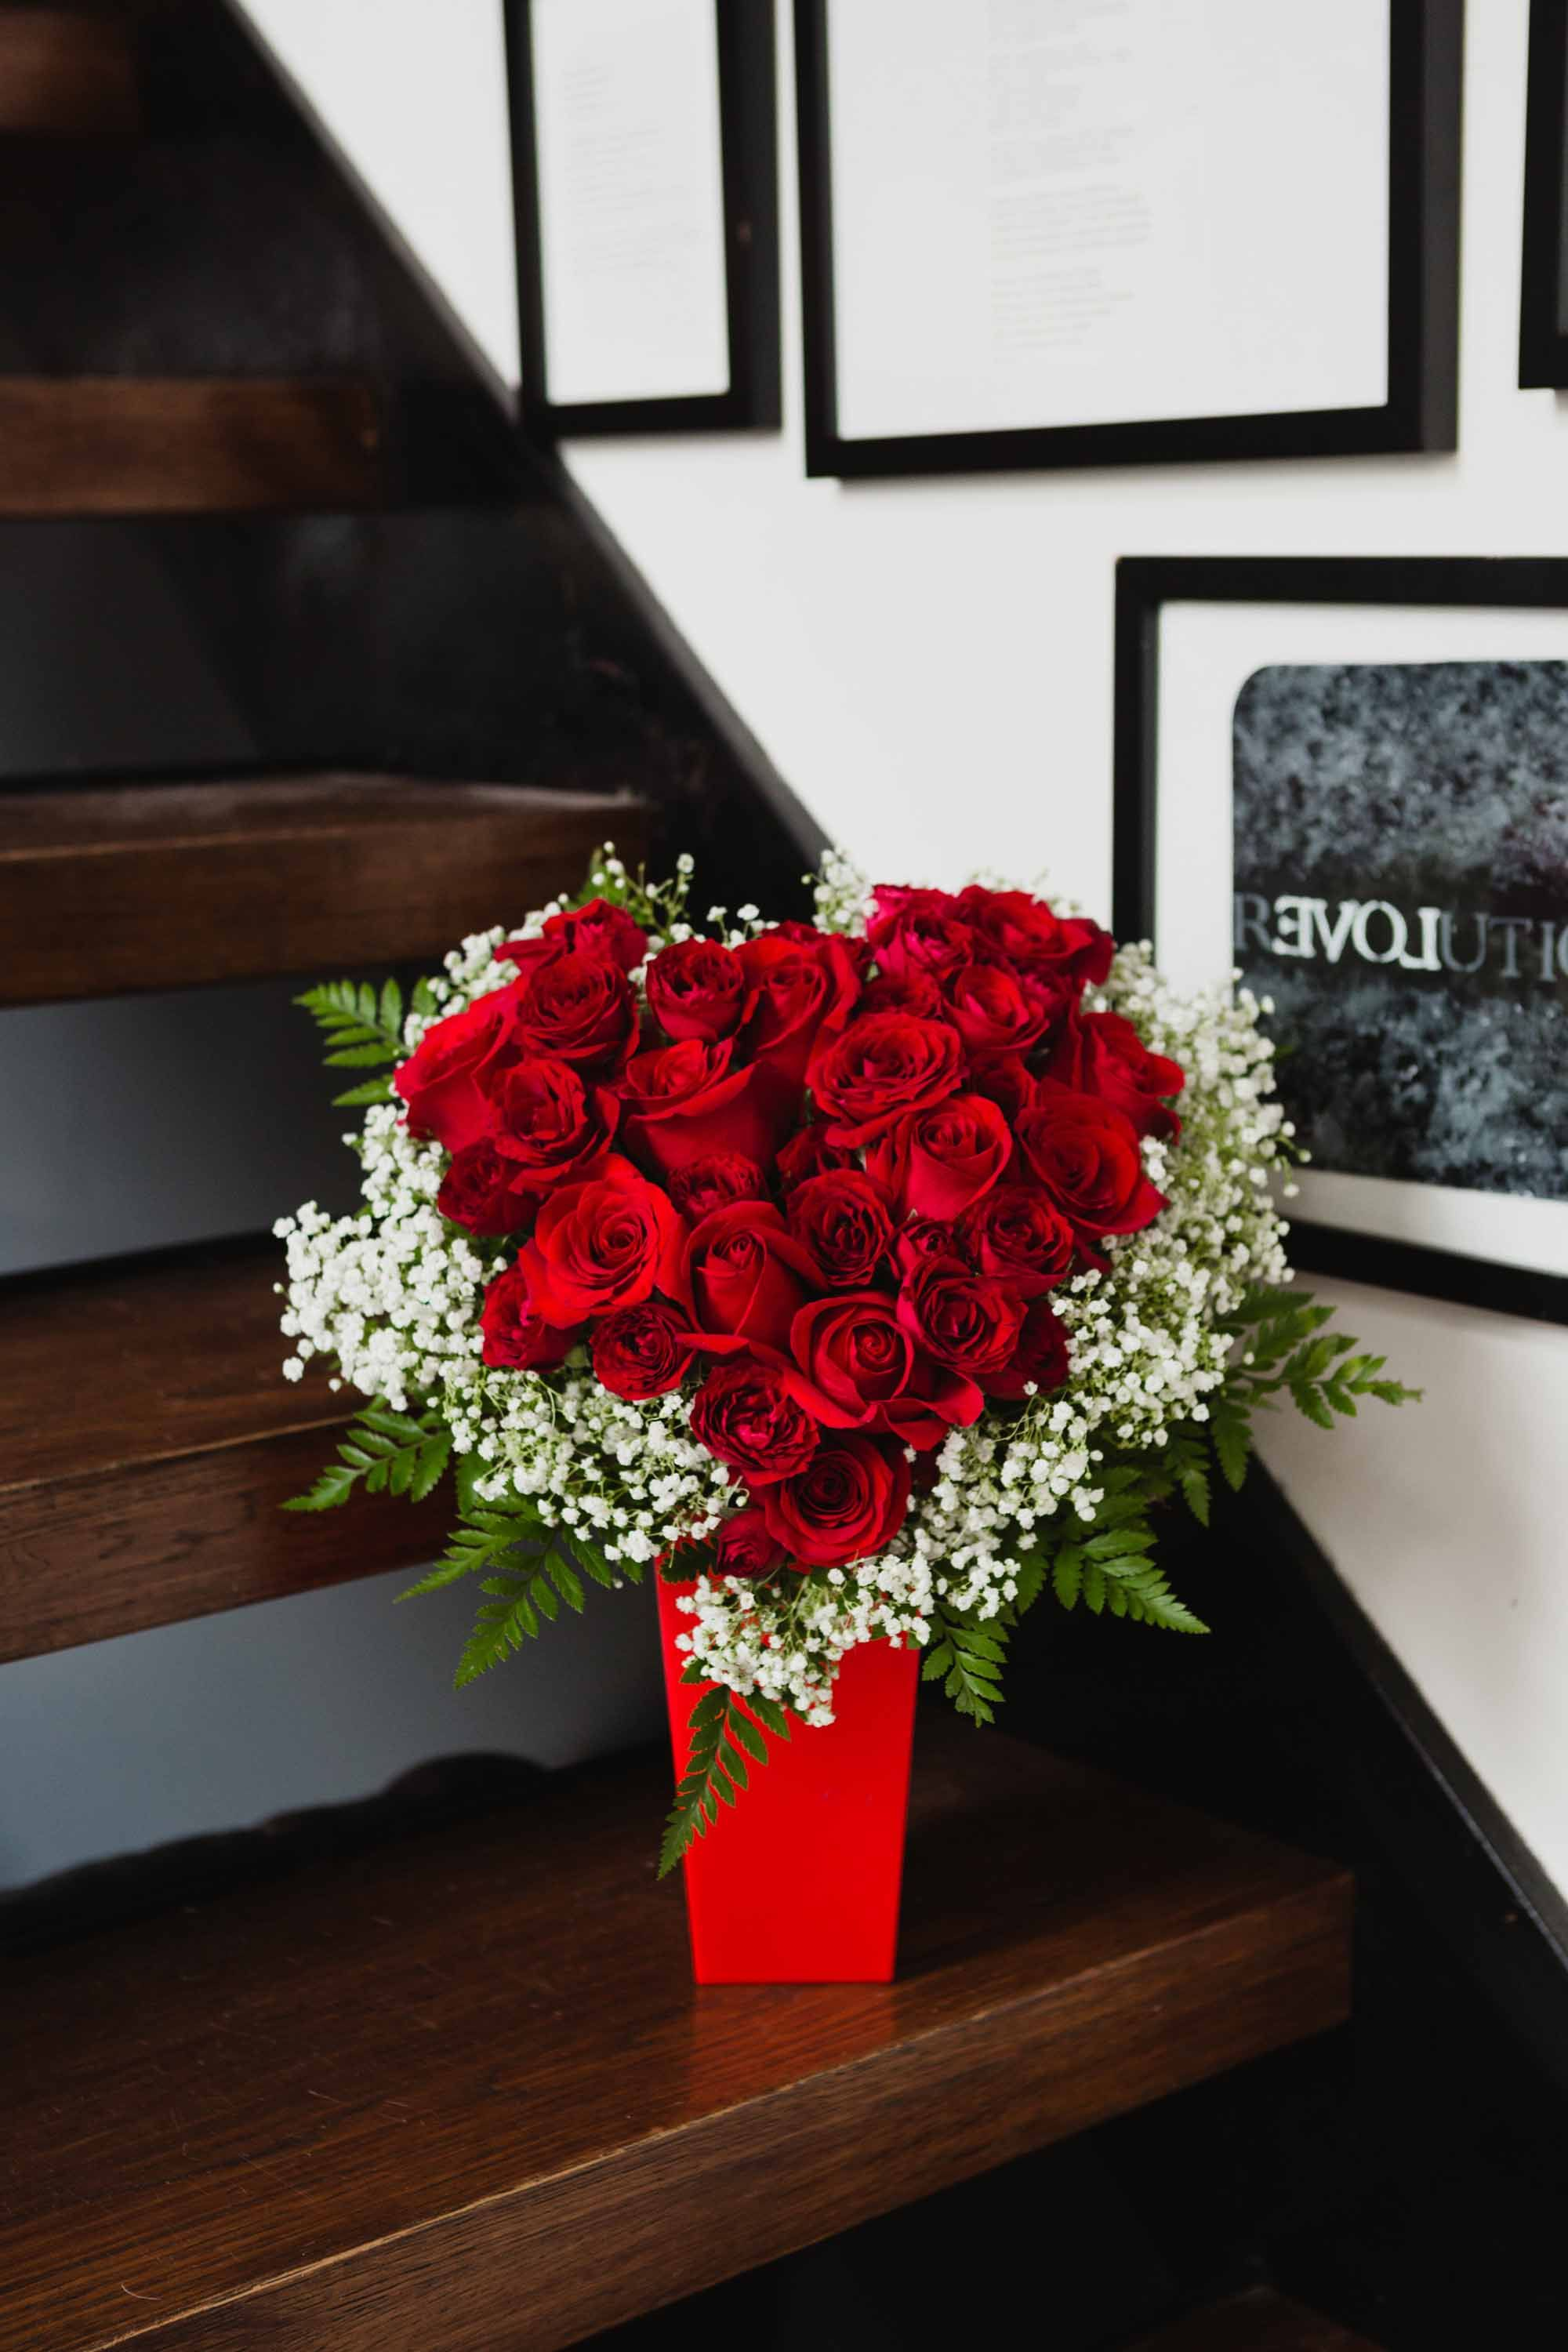 Flowers and chocolates for your Valentine